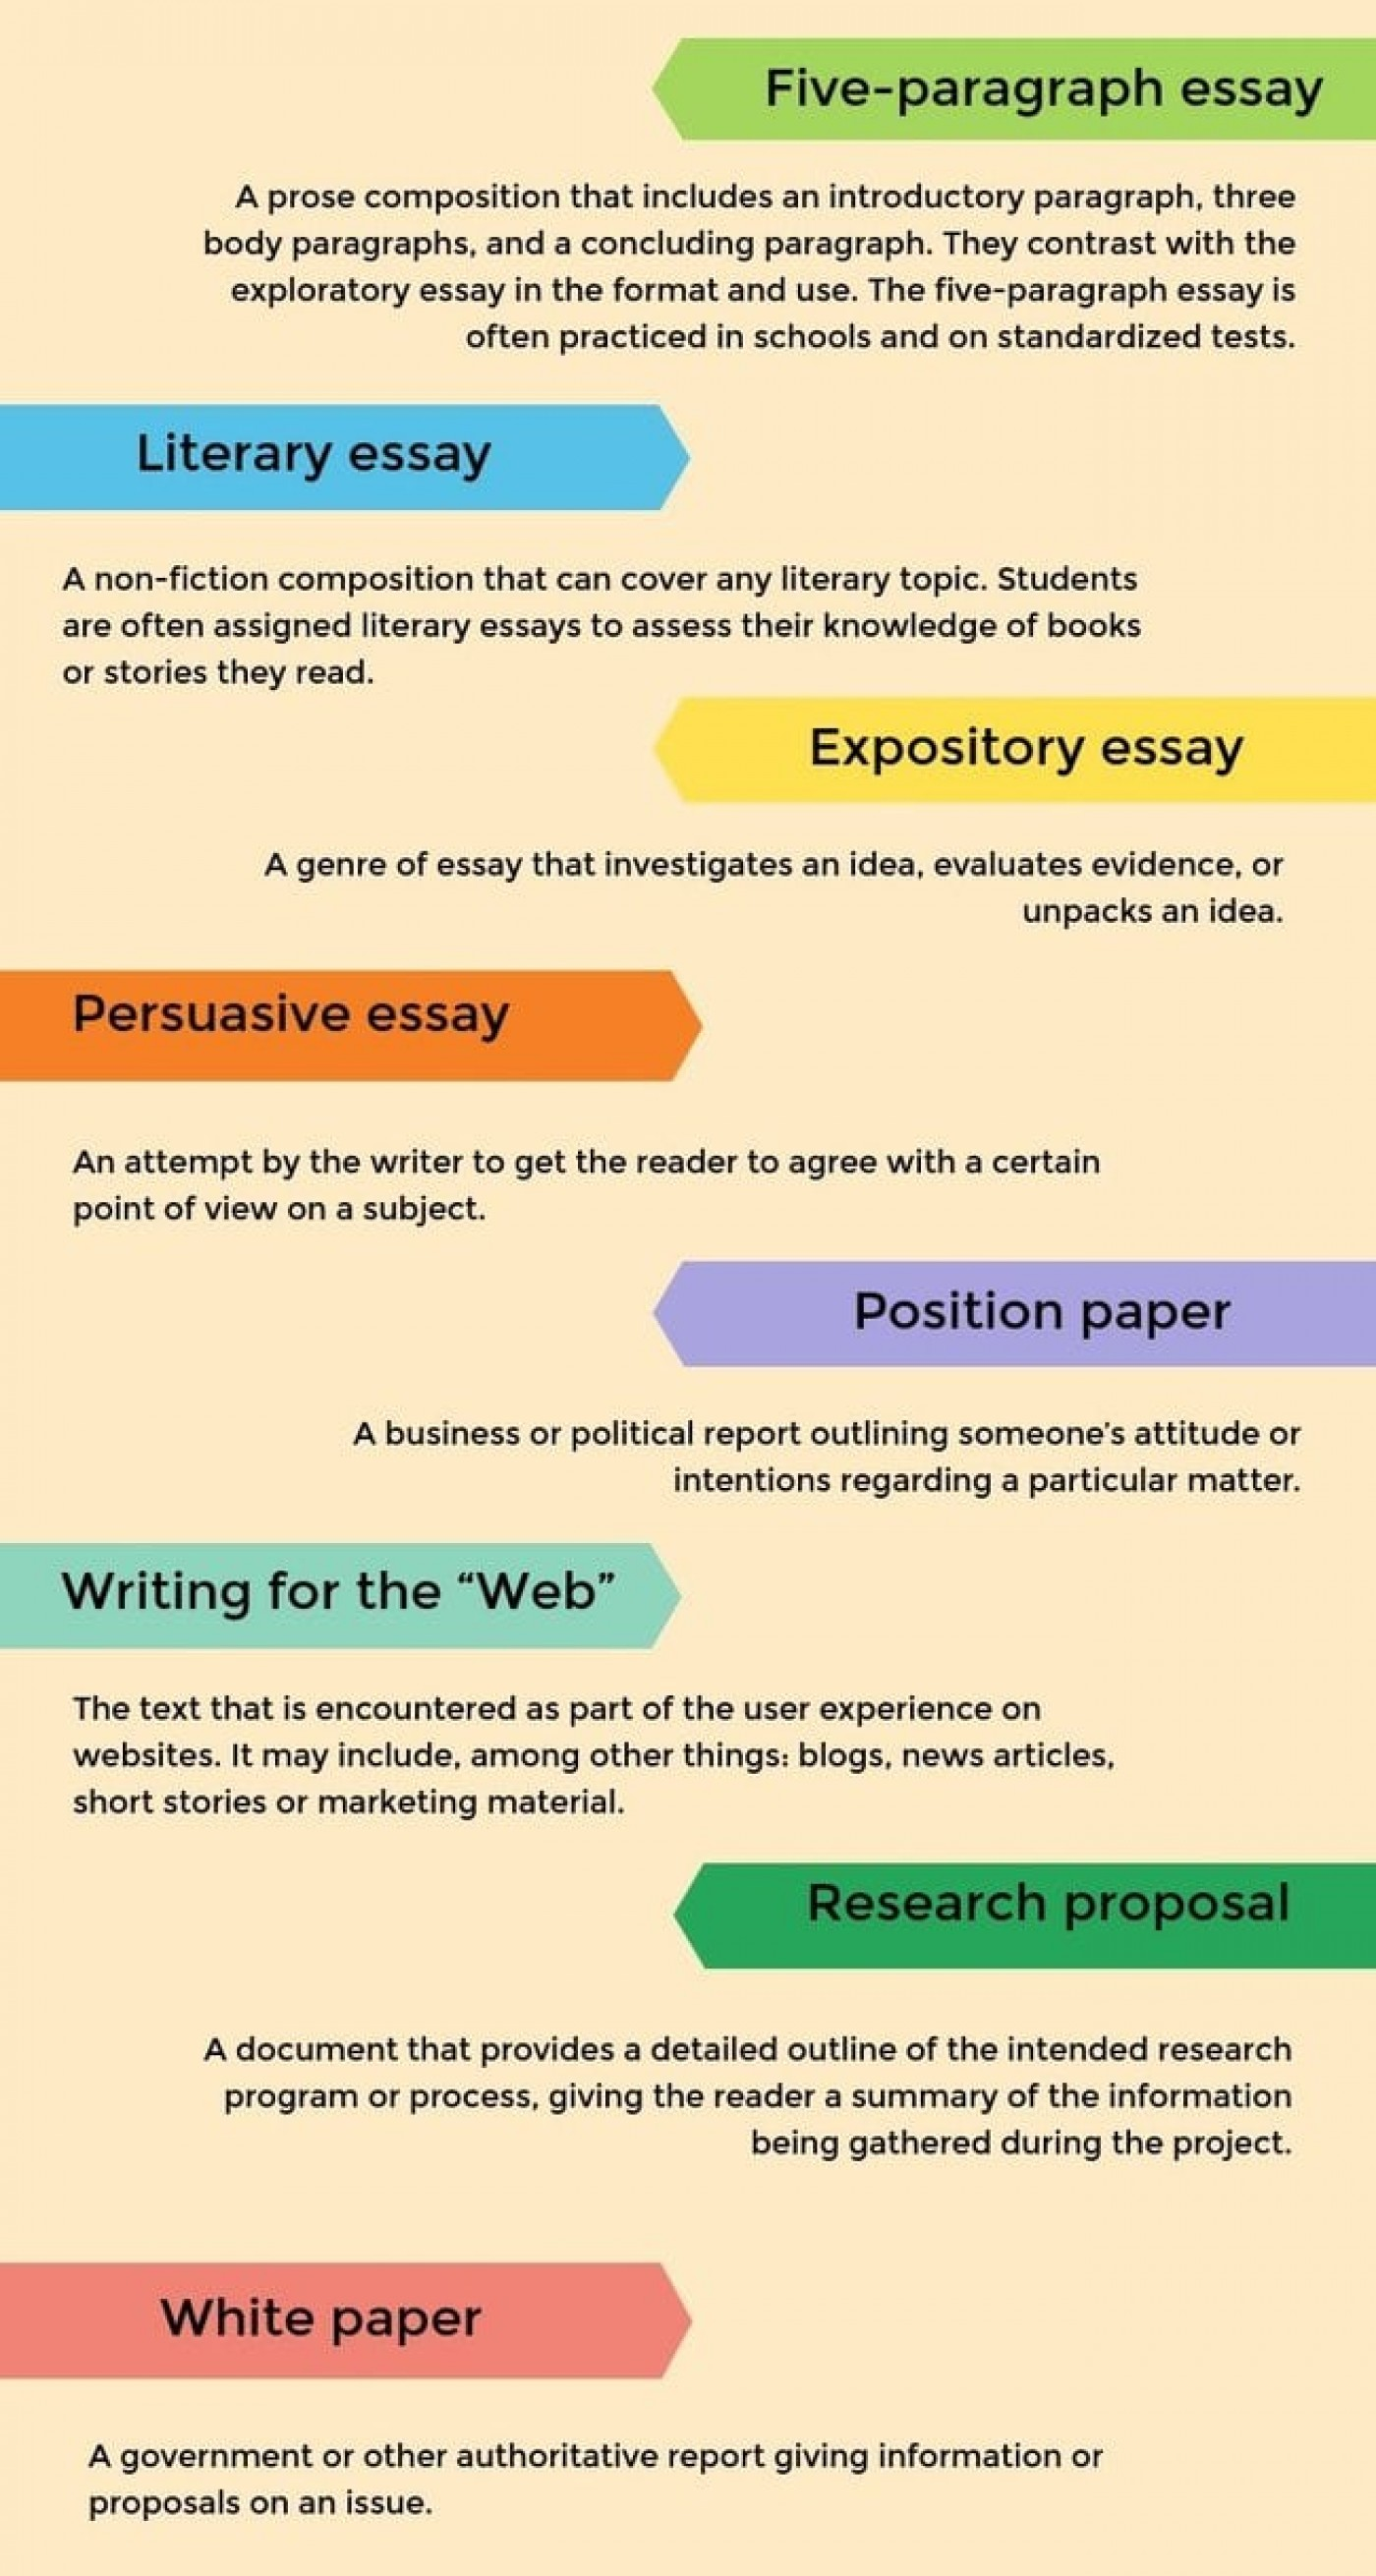 011 Oz Types Of Essays Essay Example Paragraph Best 5 Topics For High School Middle 1400